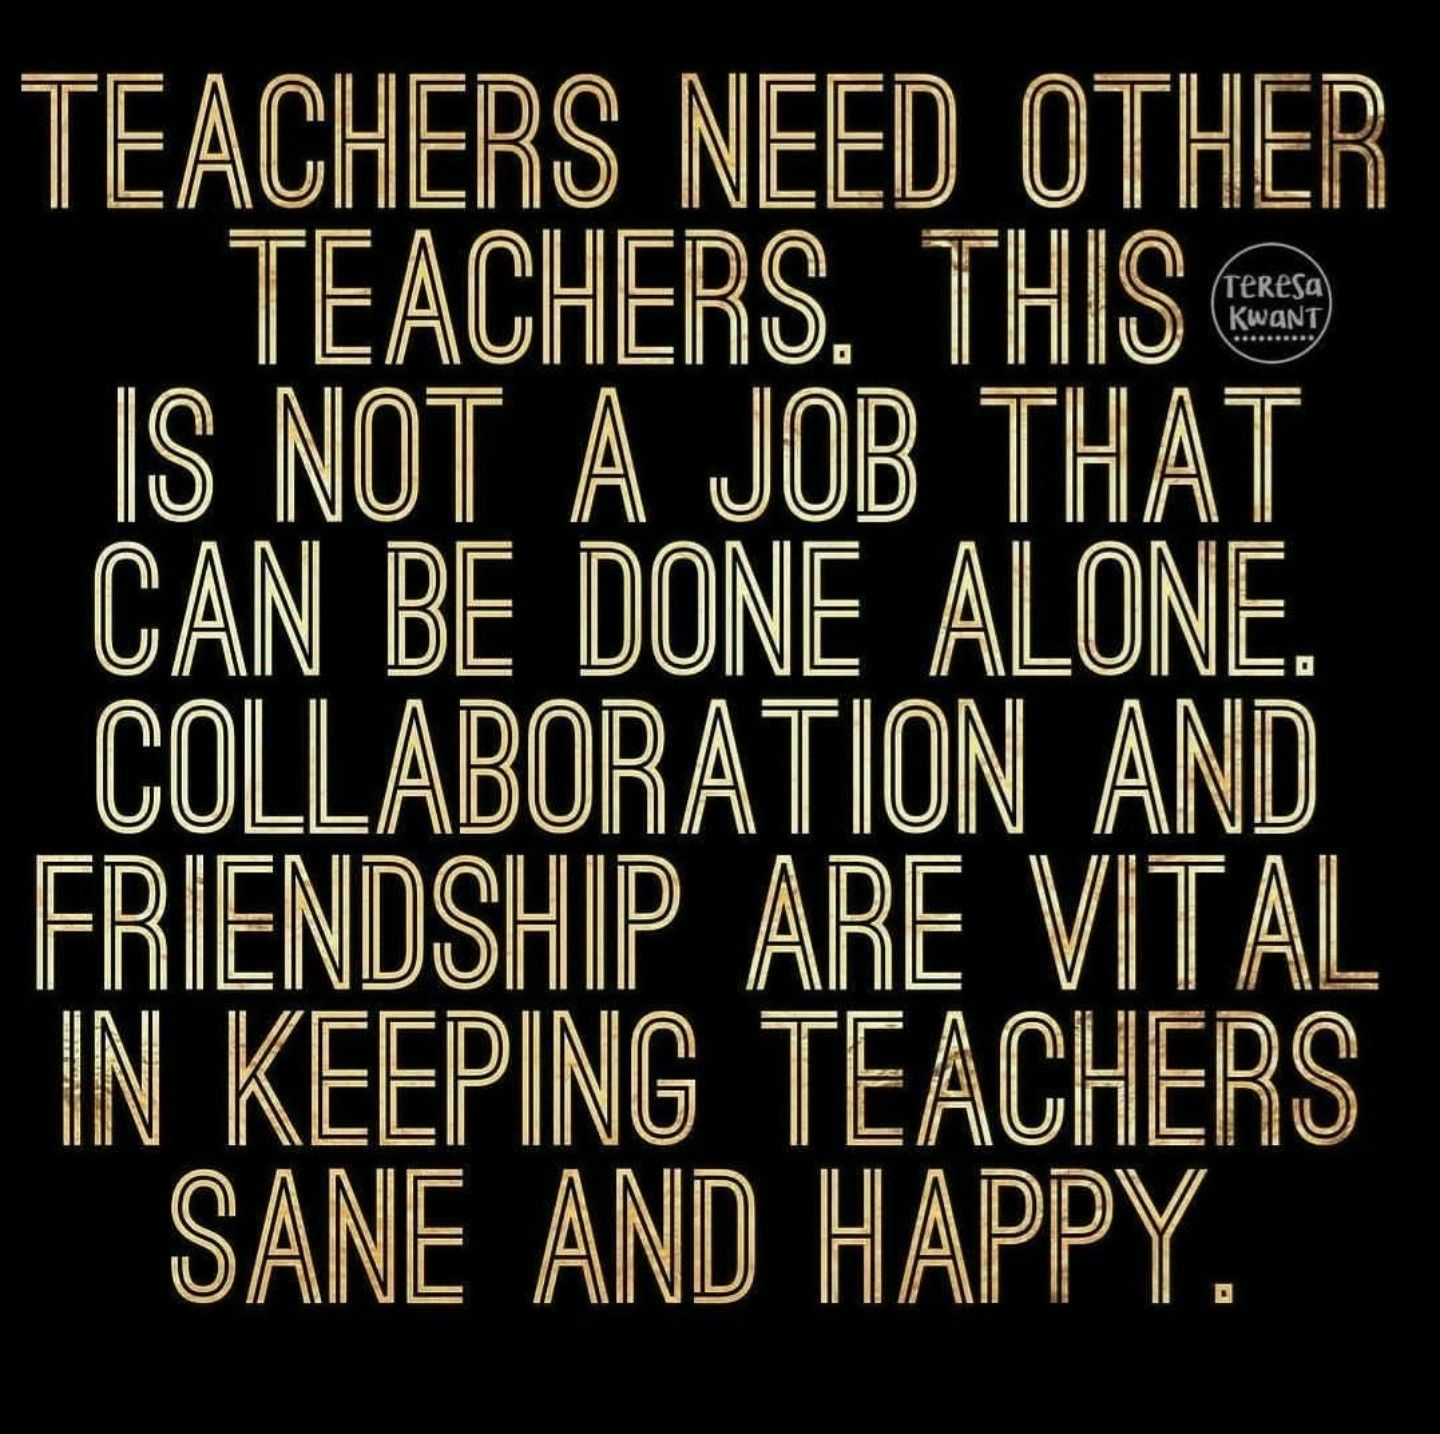 Preschool Teacher Quotes Pinrobin Bobo On Teacher Stuff  Pinterest  Teacher